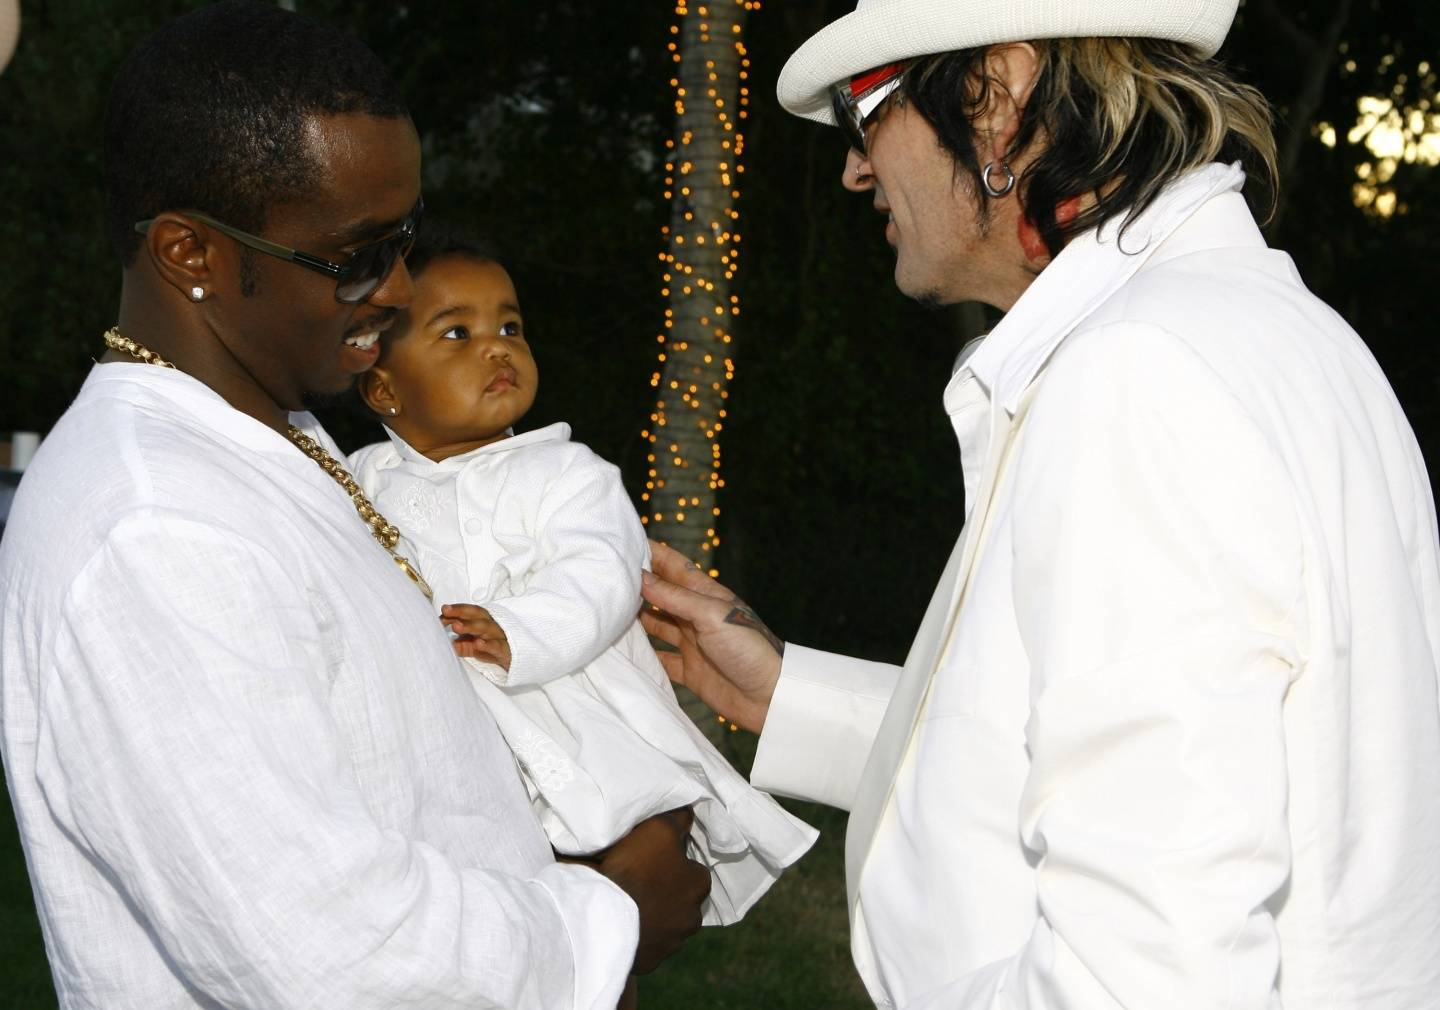 Diddy and his daughter chat with musician Tommy Lee at A-List White Party.